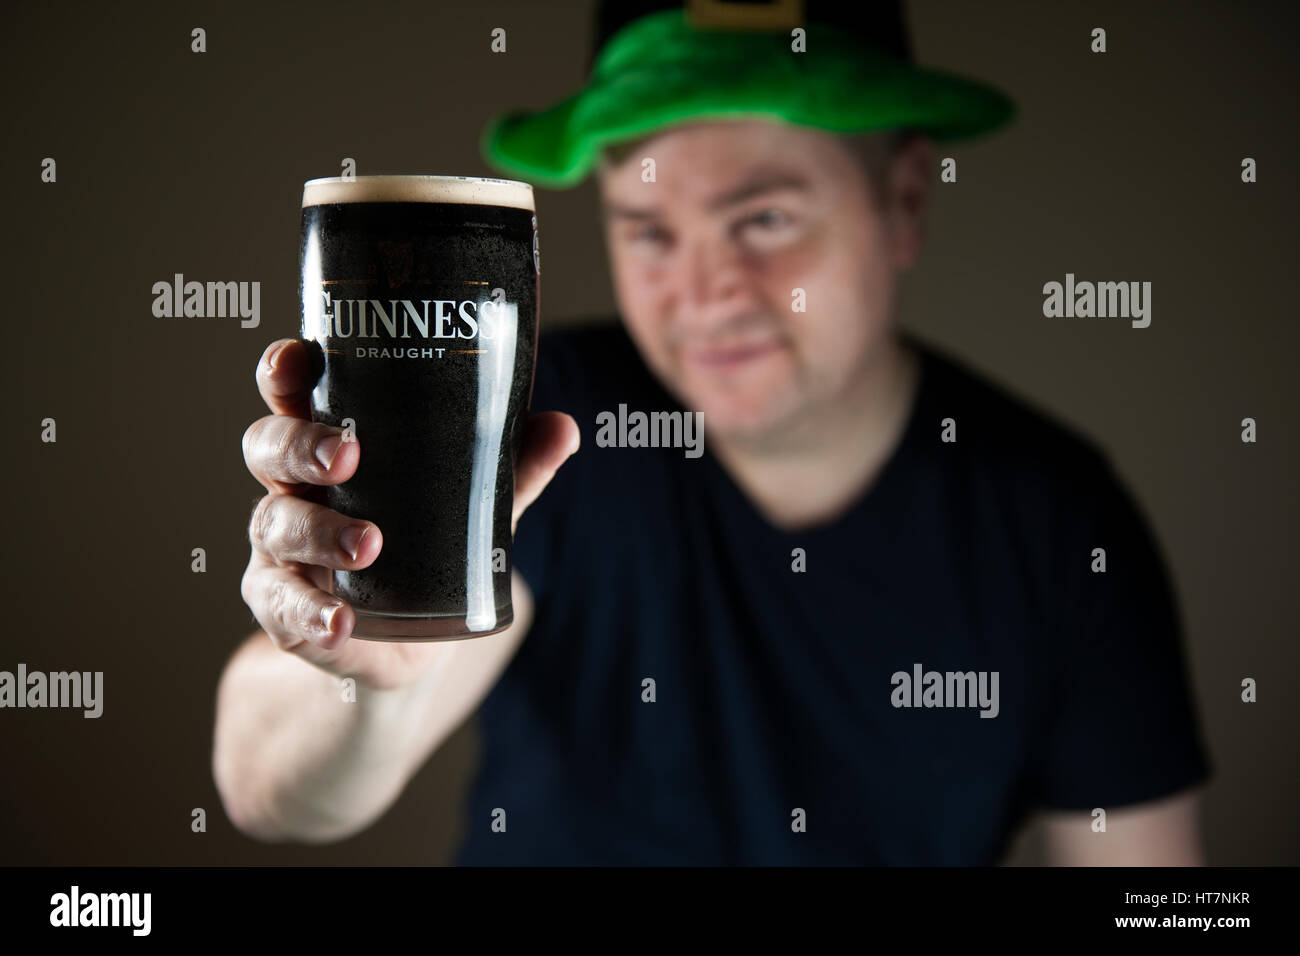 A man wearing a leprechaun hat on Saint Patrick's Day holding a pint of Guinness stout towards the camera - Stock Image